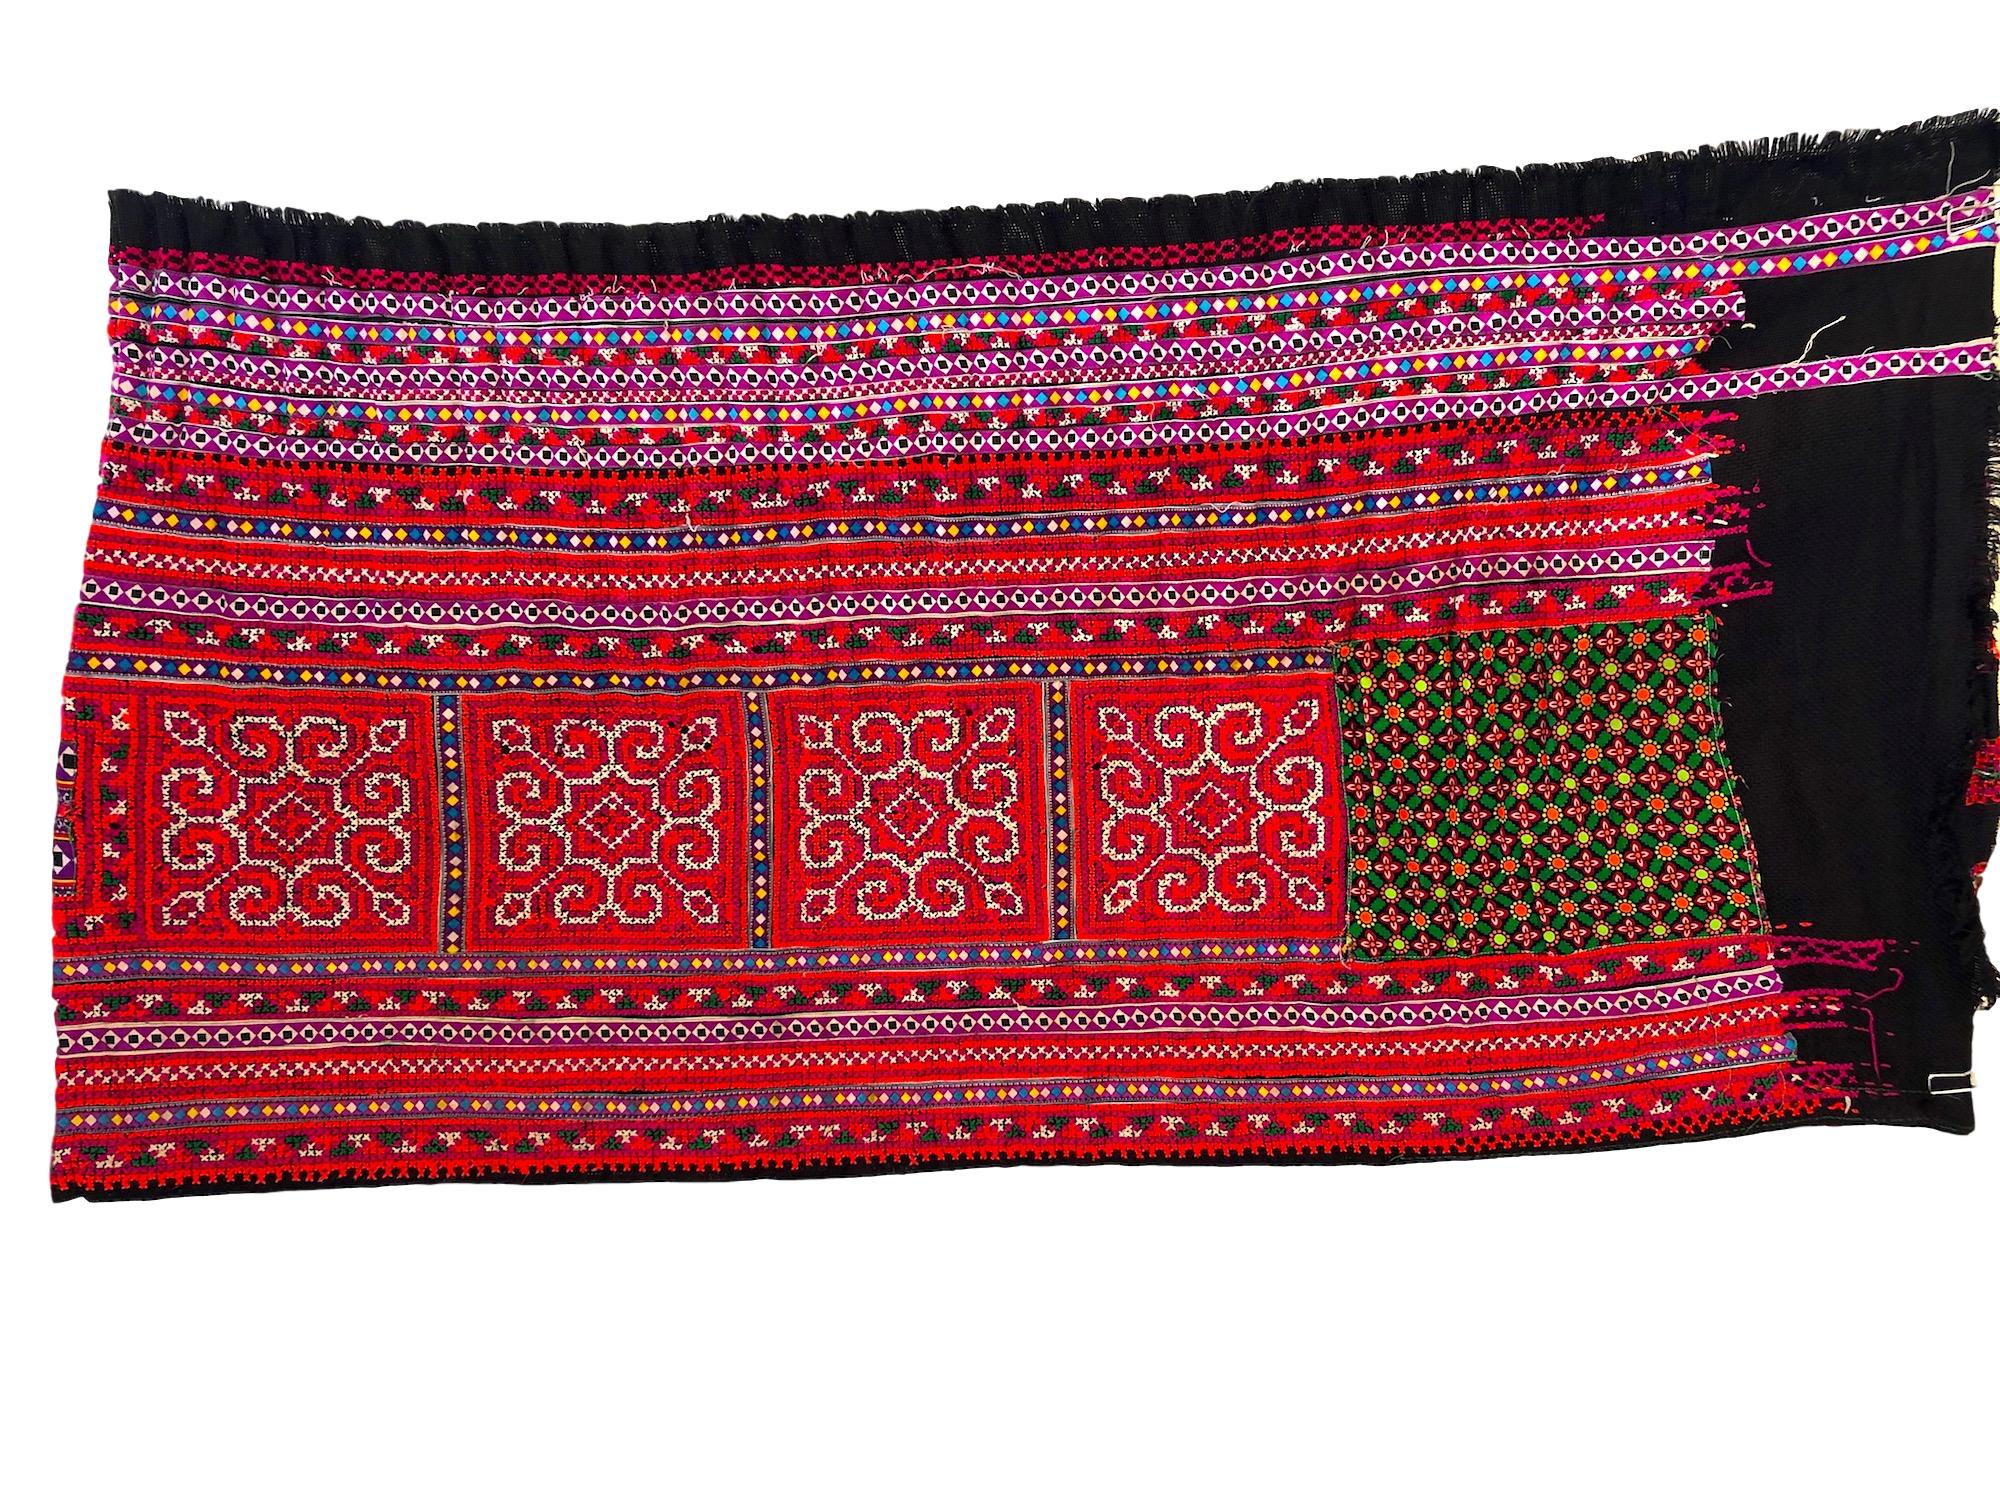 Hmong skirt fabric 2 mt x .5 mt - Pallu Design